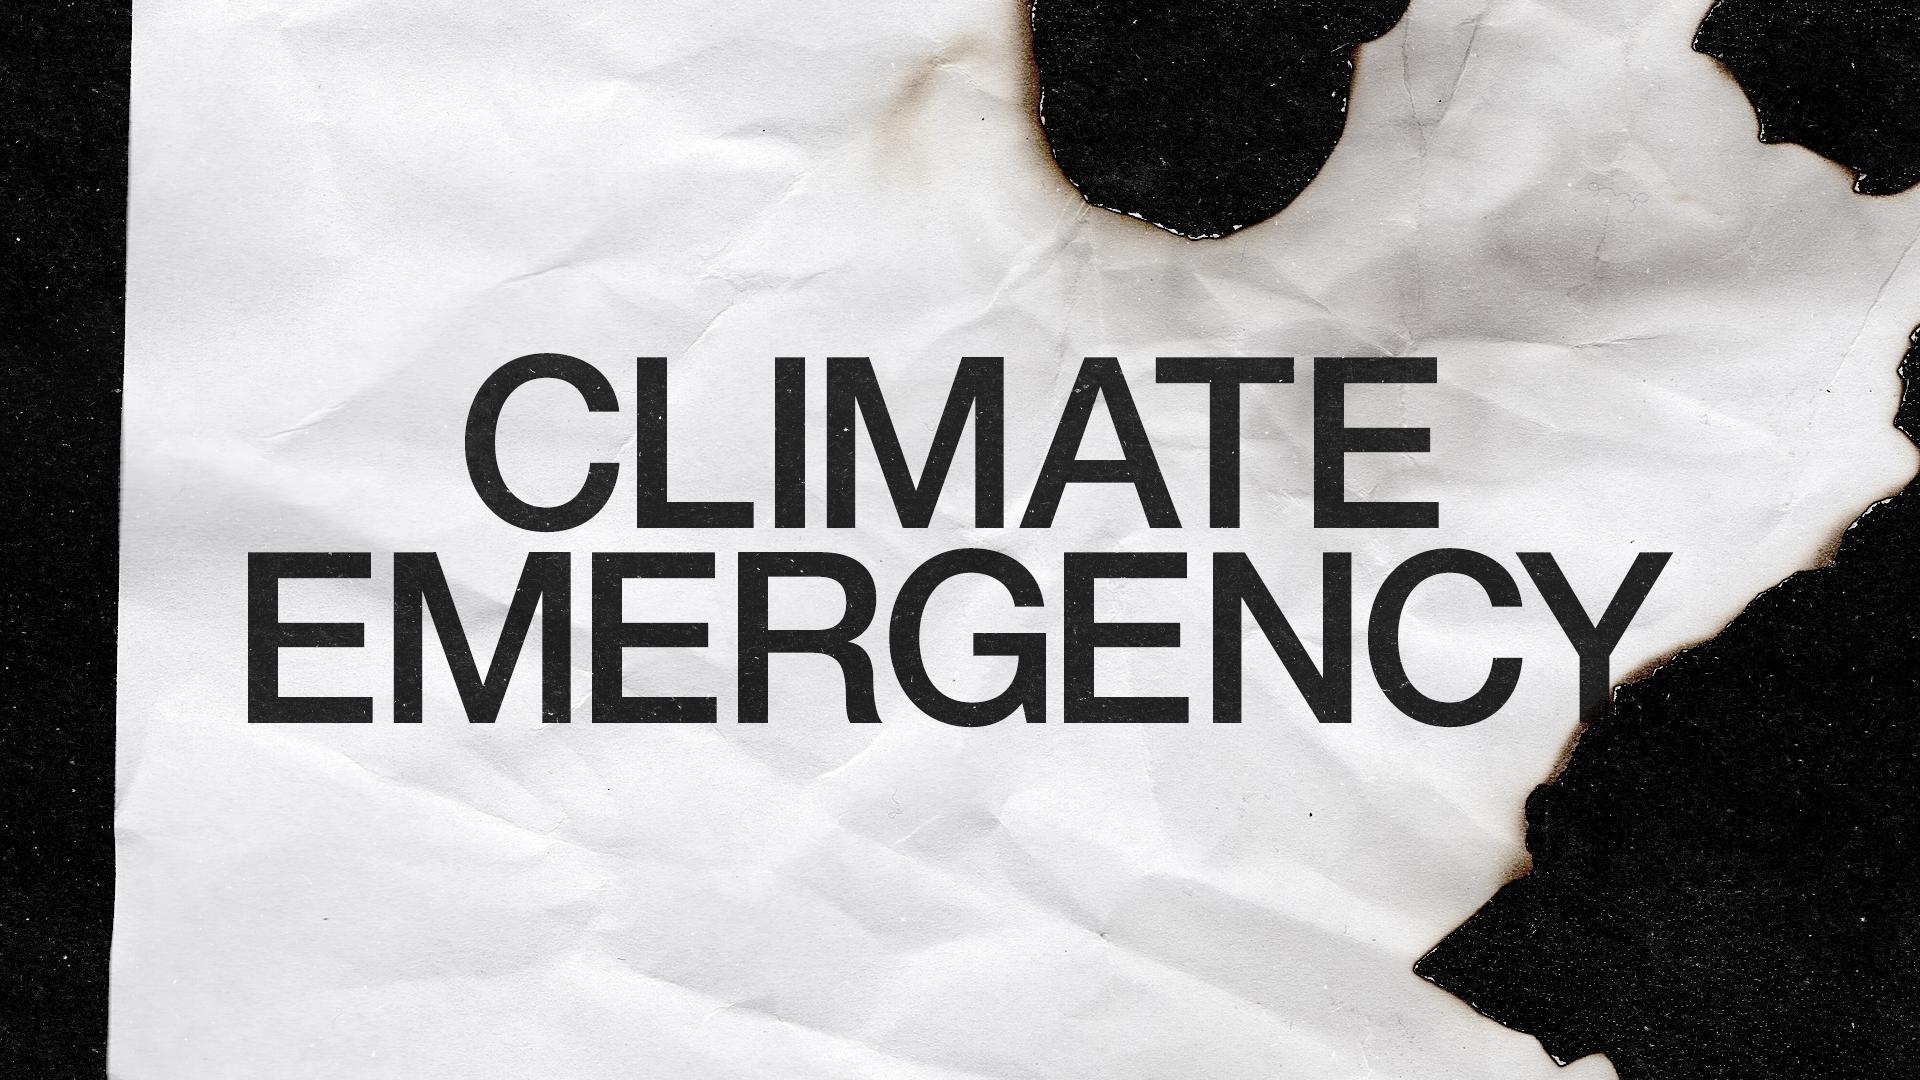 We are declaring a climate emergency